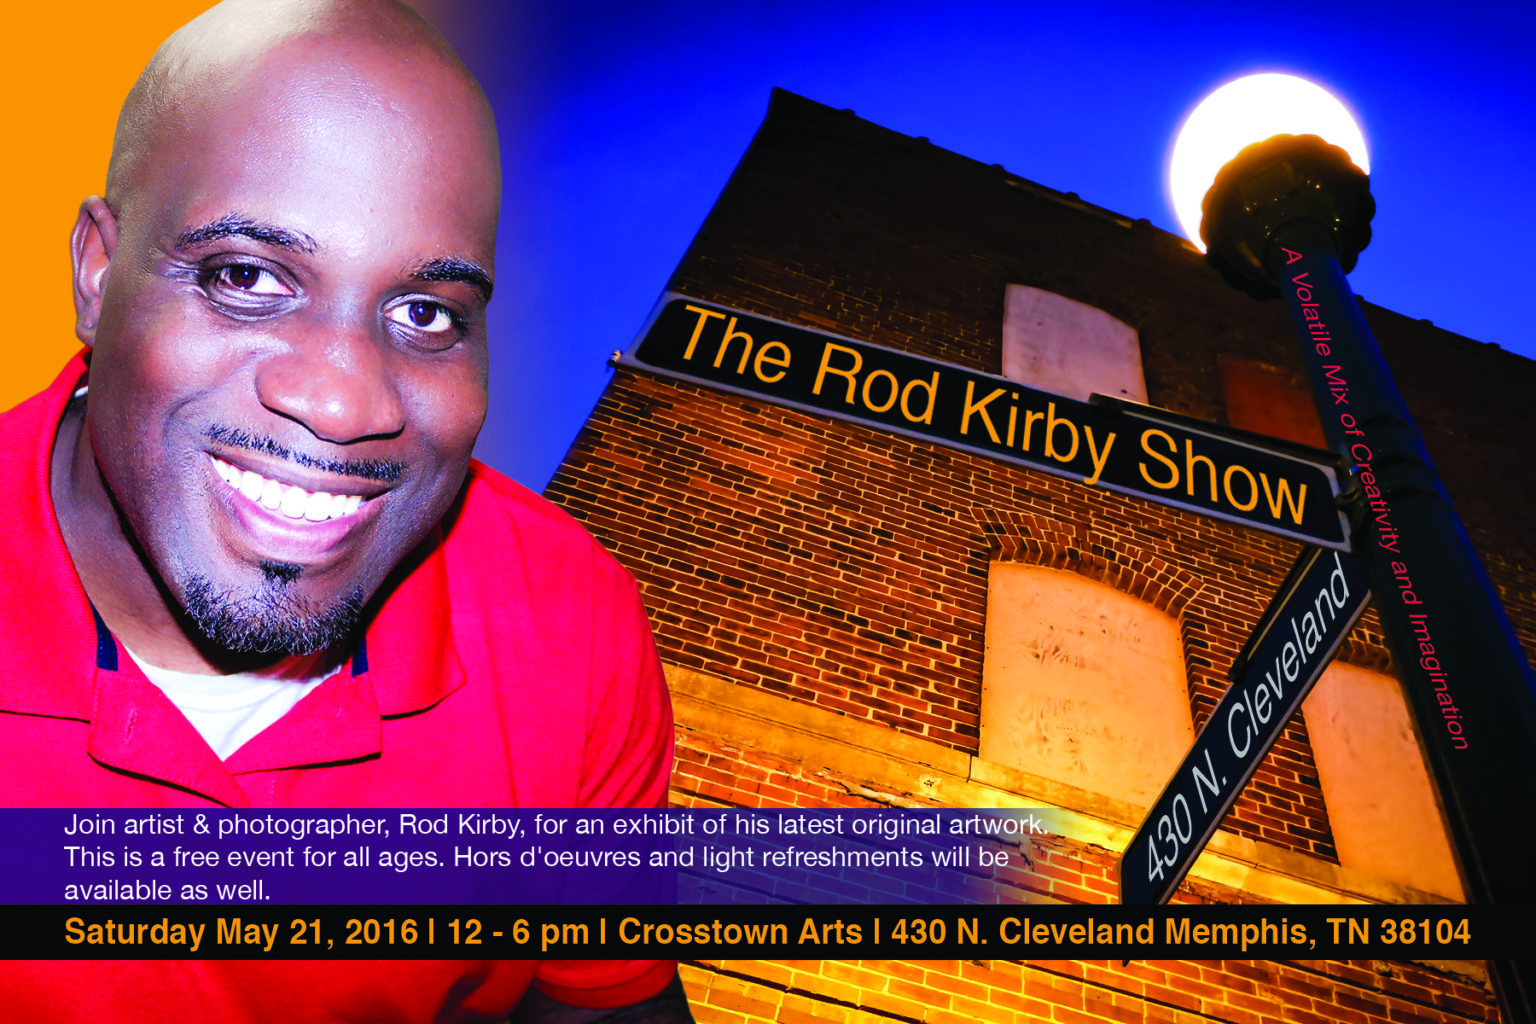 The Rod Kirby Show: A Volatile Mix of Creativity and Imagination